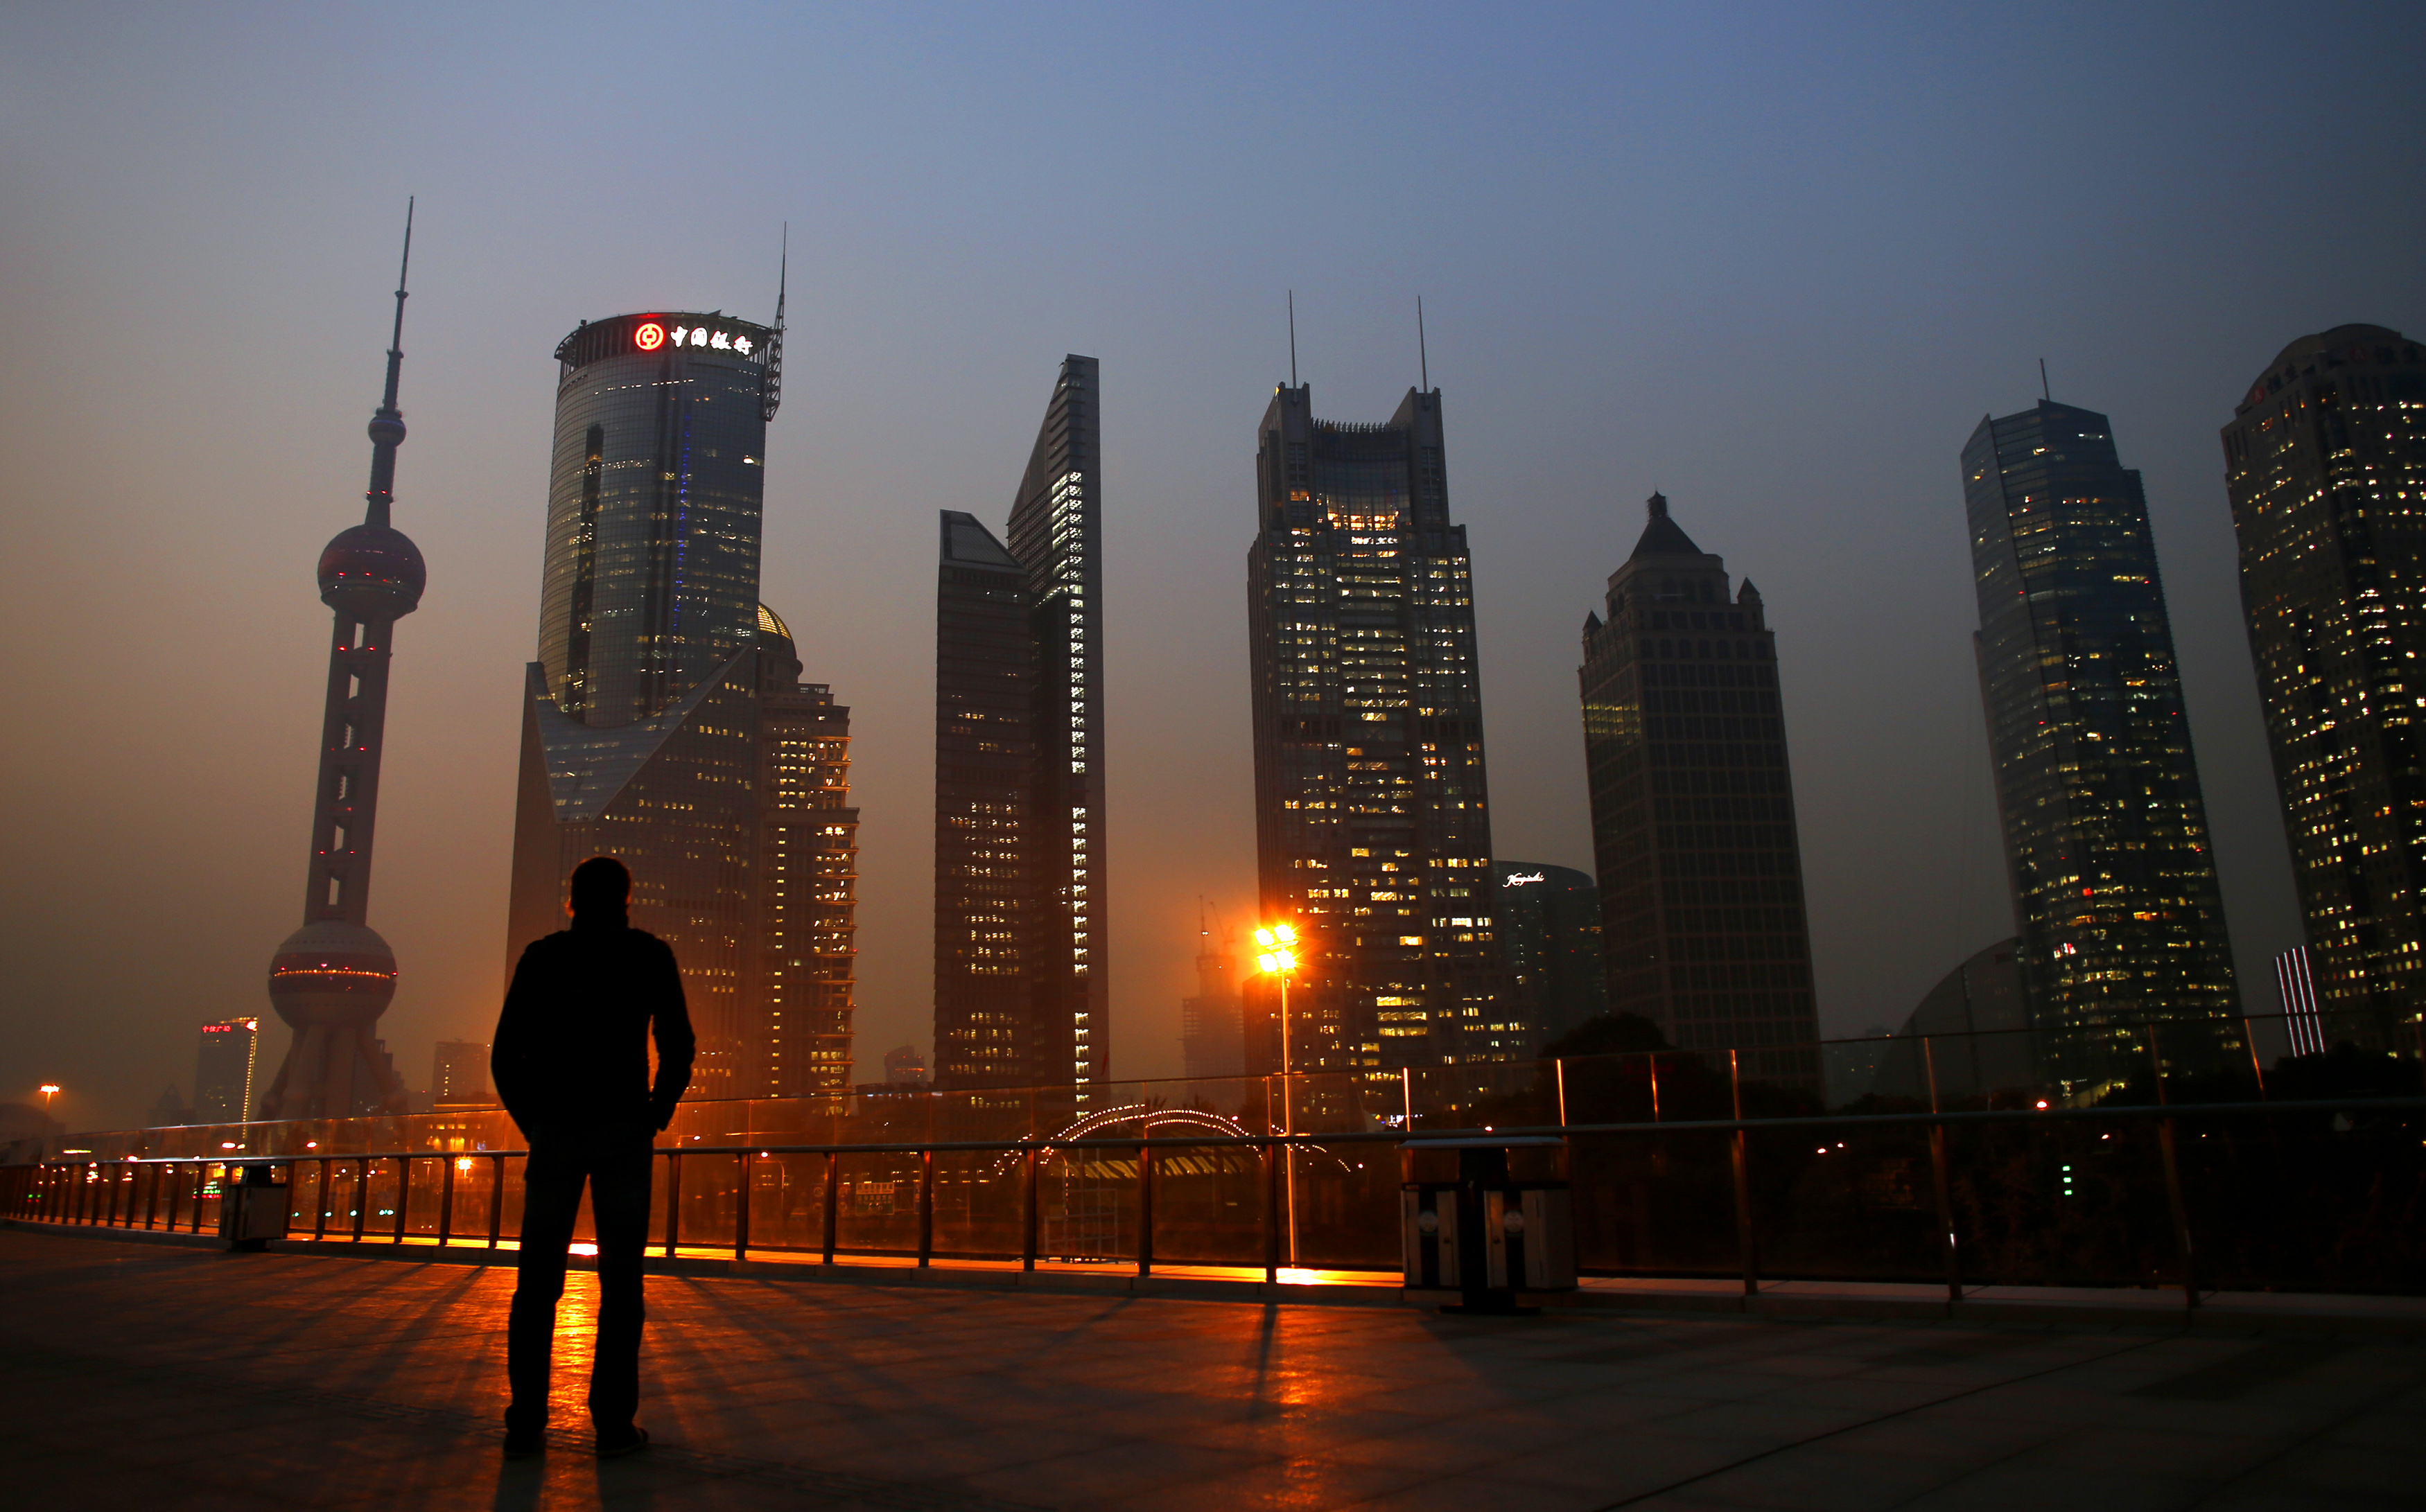 China third quarter growth meets expectations at 6.8%